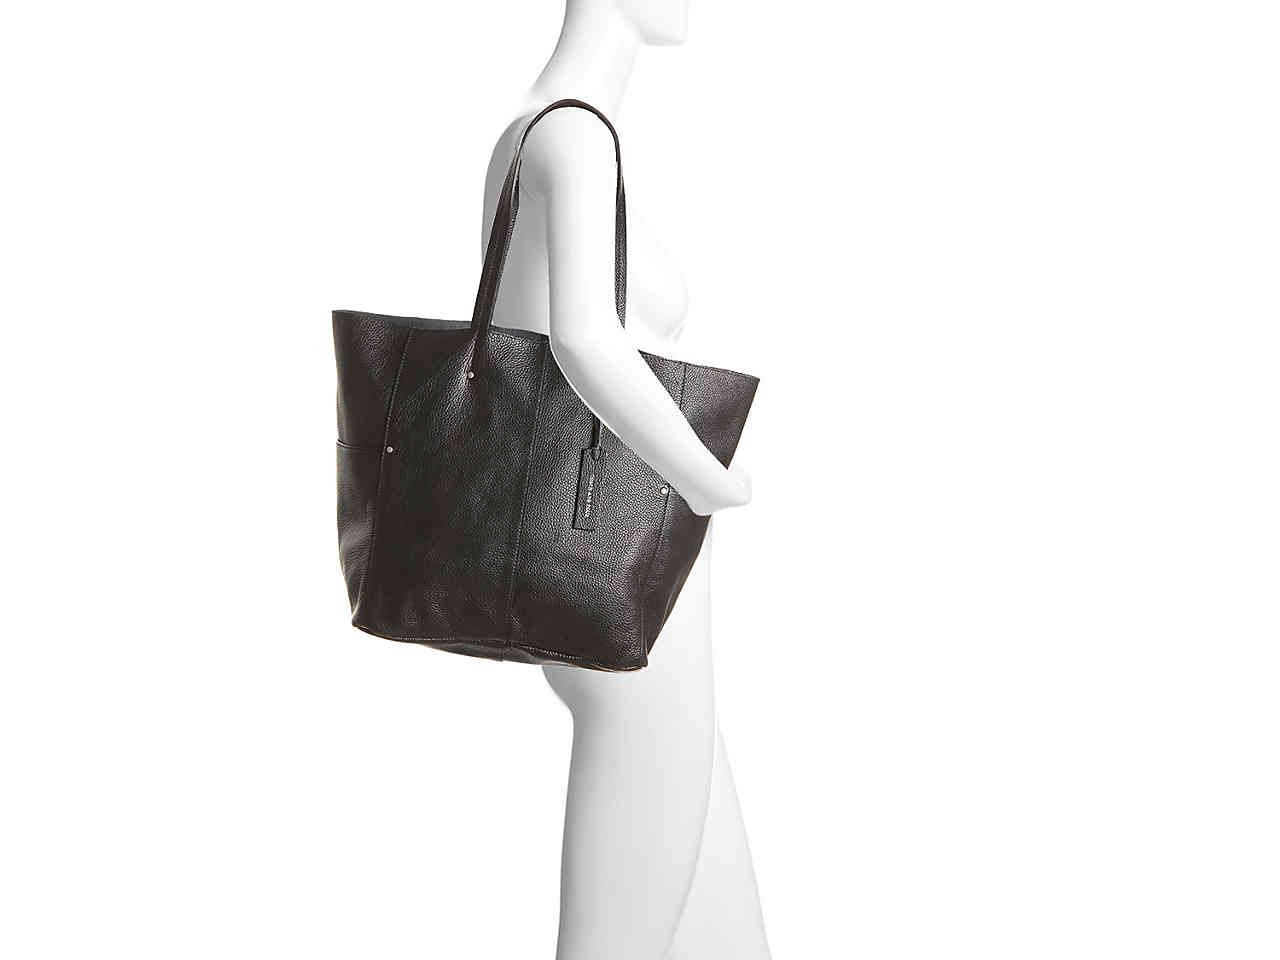 5c574f1294f5d Coach and Four Unlined Leather Tote Women's Handbags & Accessories | DSW